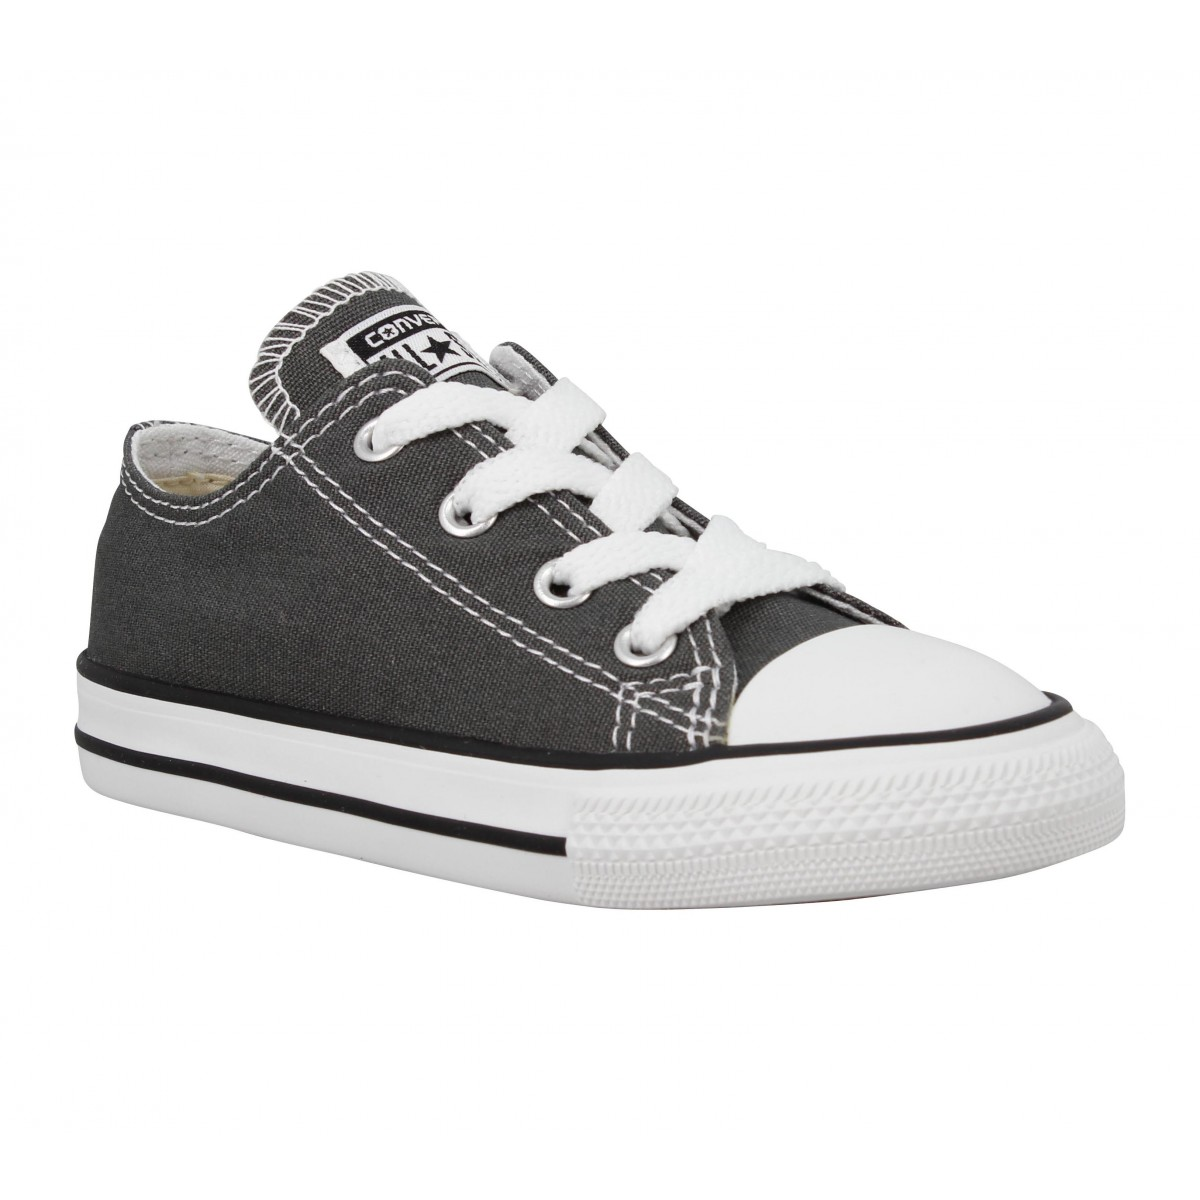 Baskets CONVERSE Chuck Taylor All Star toile Enfant Anthracite